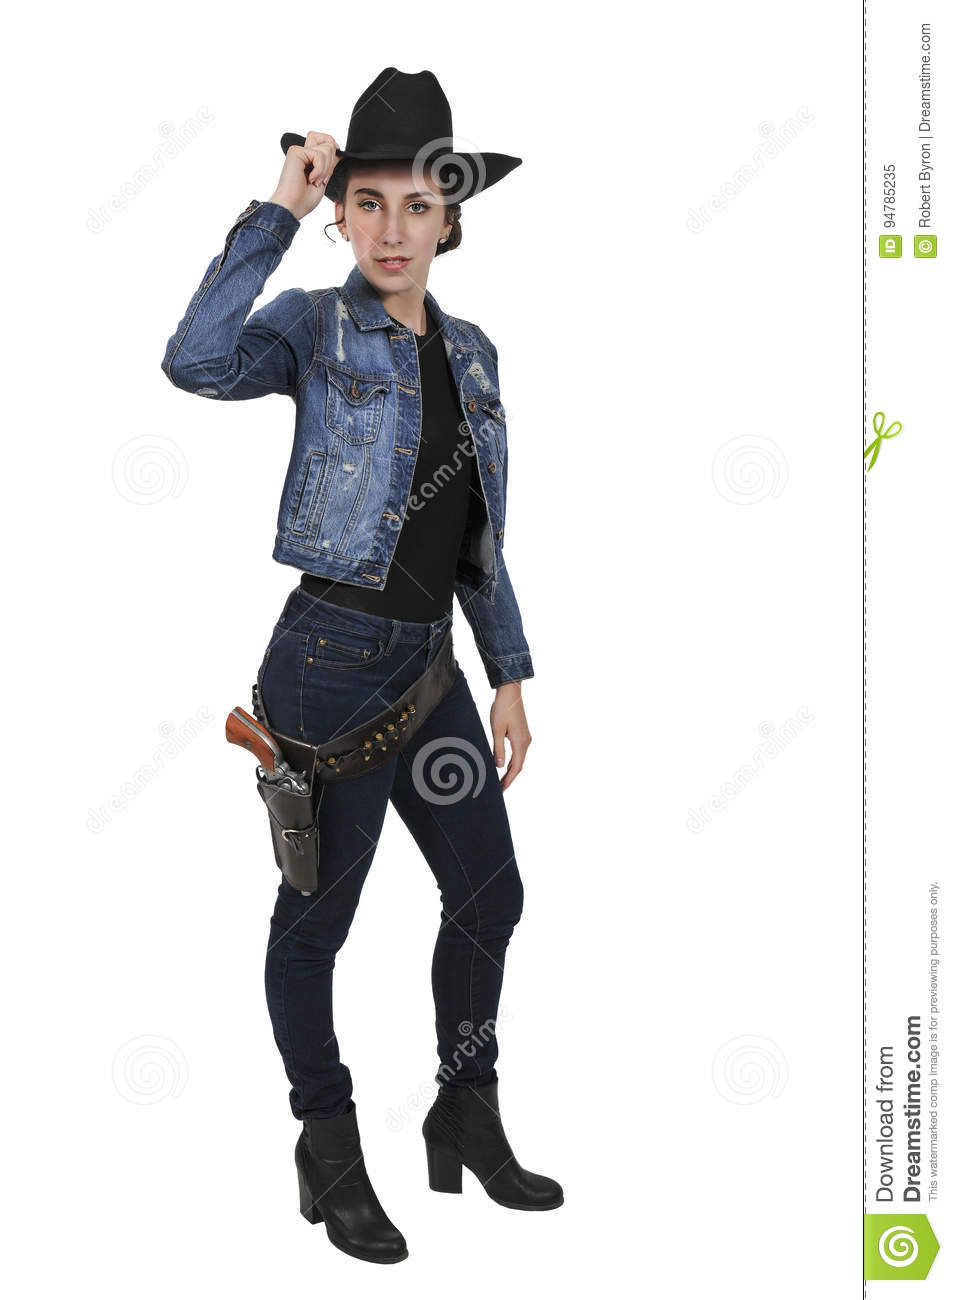 8056379eba9 Cowgirl with relvolver stock image. Image of shooters - 94785235